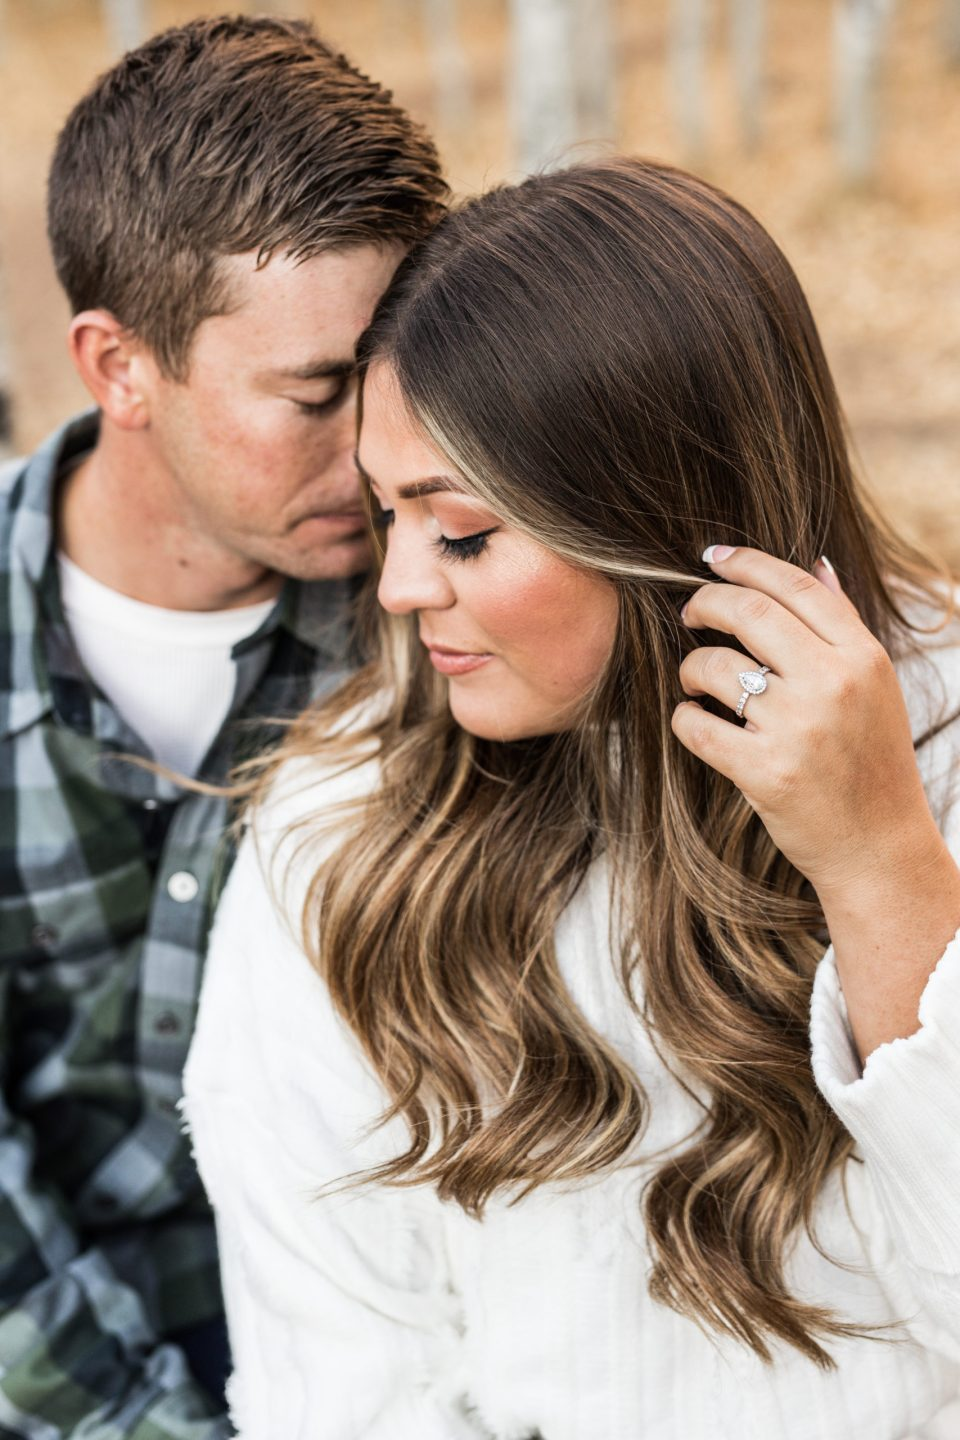 Fall Flagstaff Engagement Photography by Brooke & Doug Photography